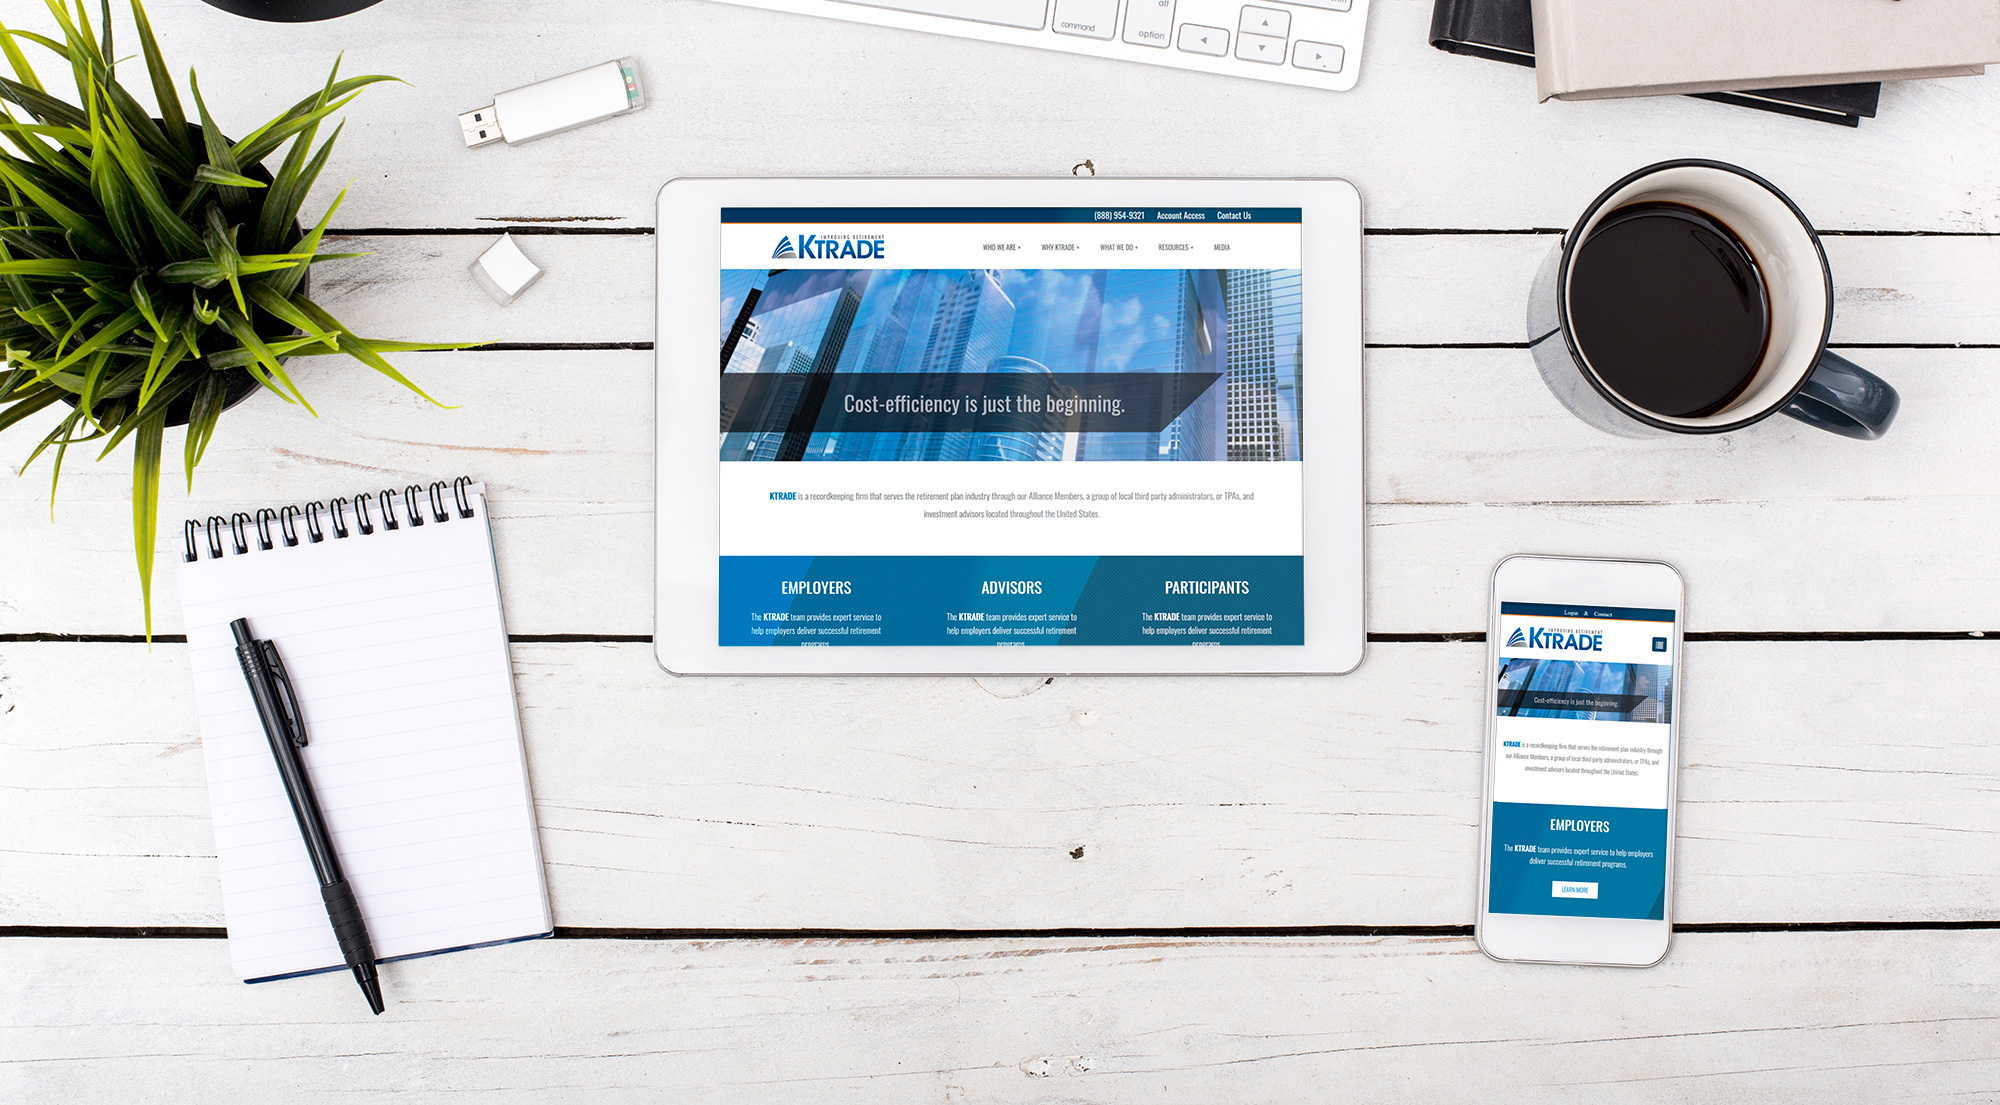 KTrade home page on a tablet and smartphone